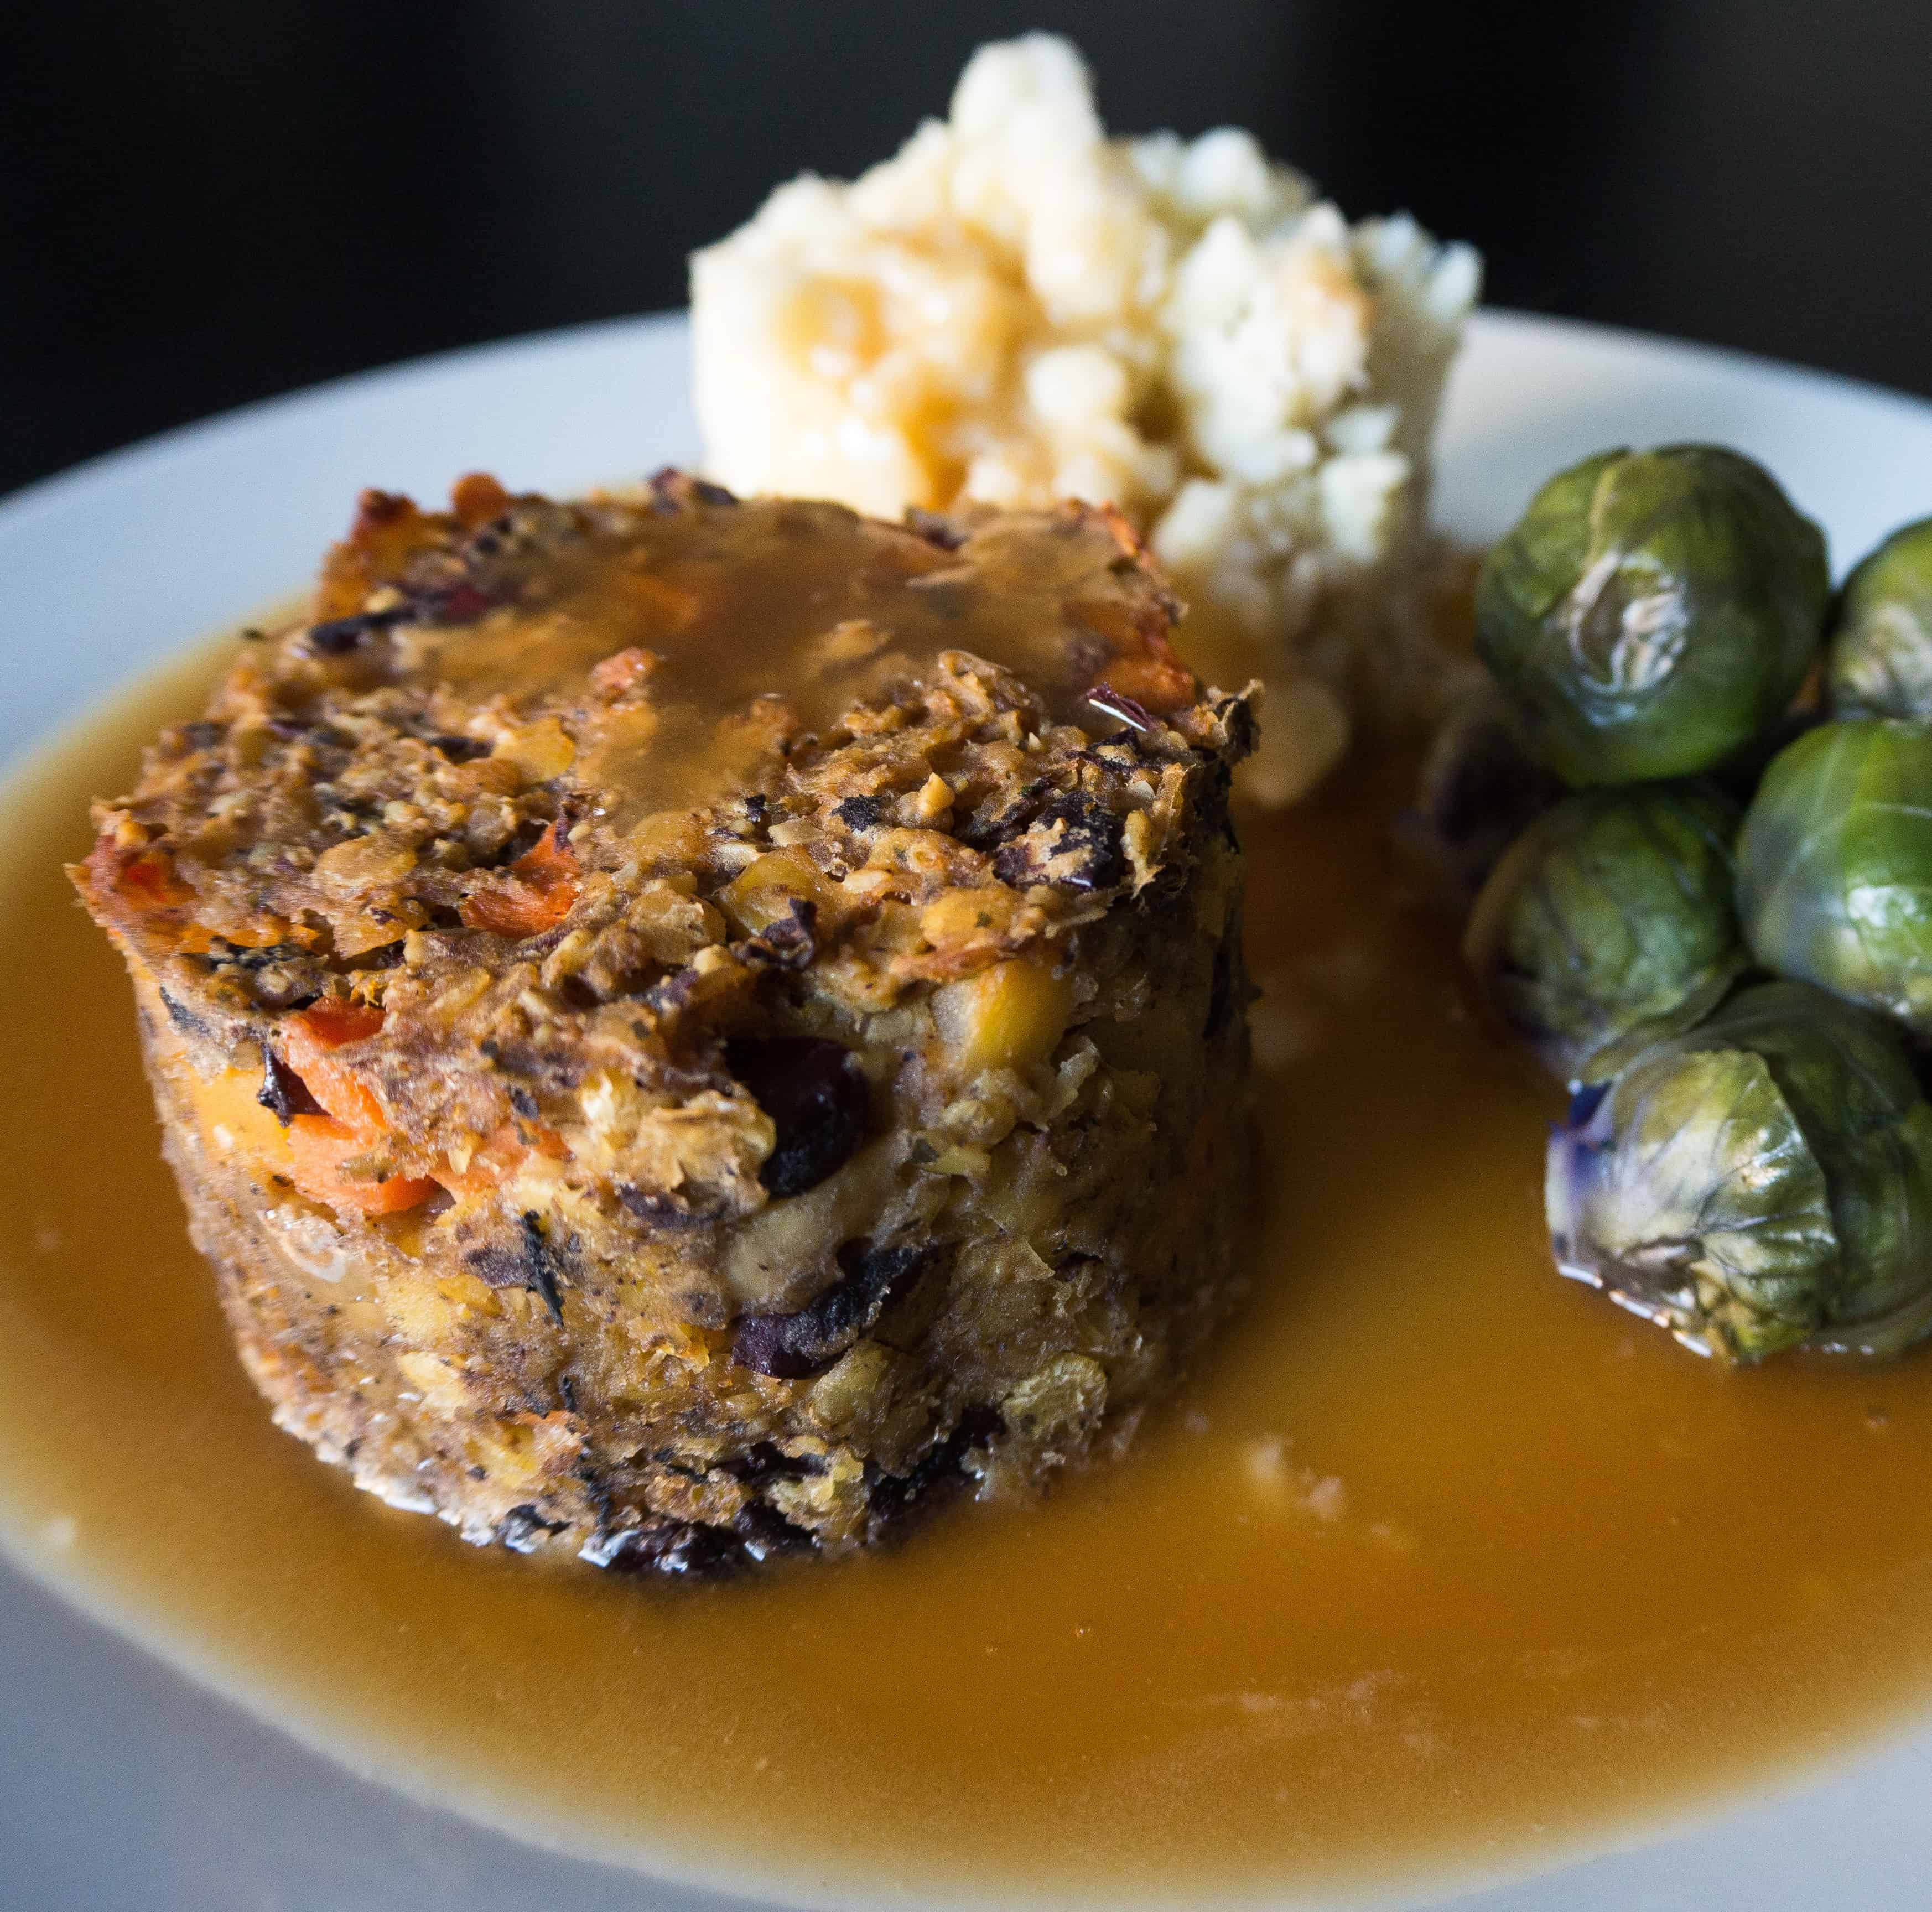 Gluten free, vegan haggis with mashed potatoes, purple sprouts and gravy